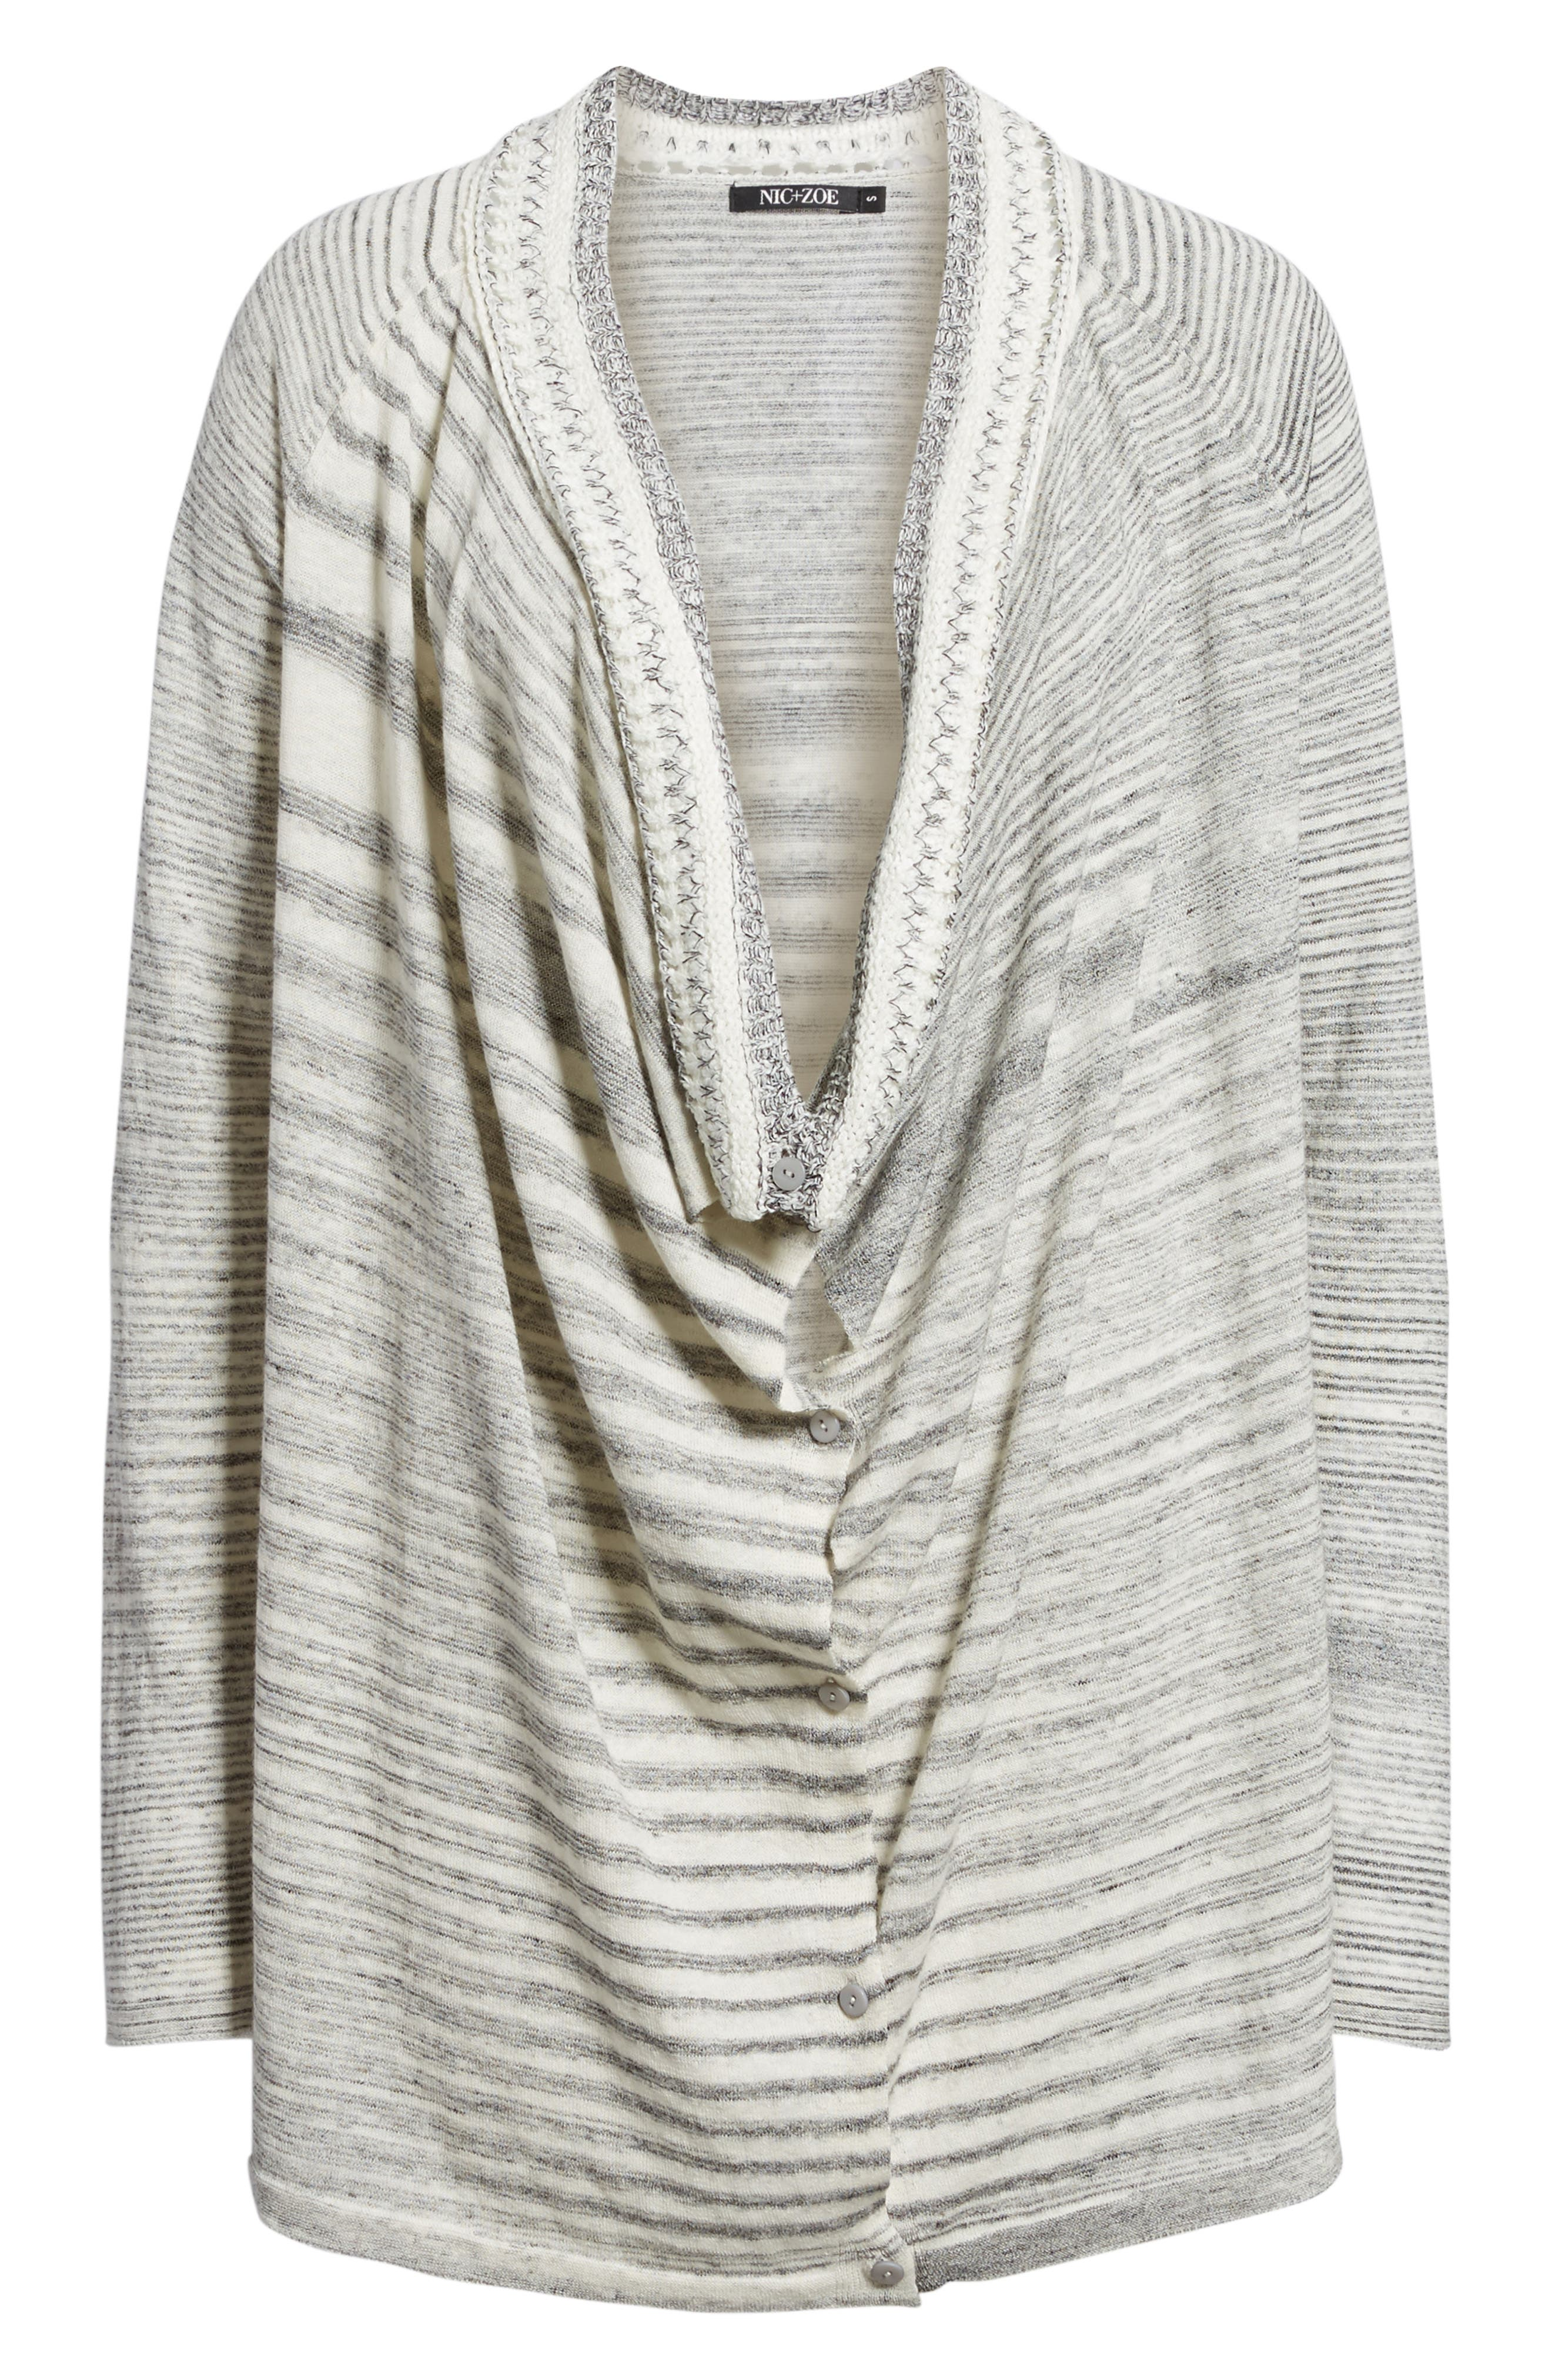 NIC + ZOE Time Change Cowl Neck Cardigan,                             Alternate thumbnail 6, color,                             050